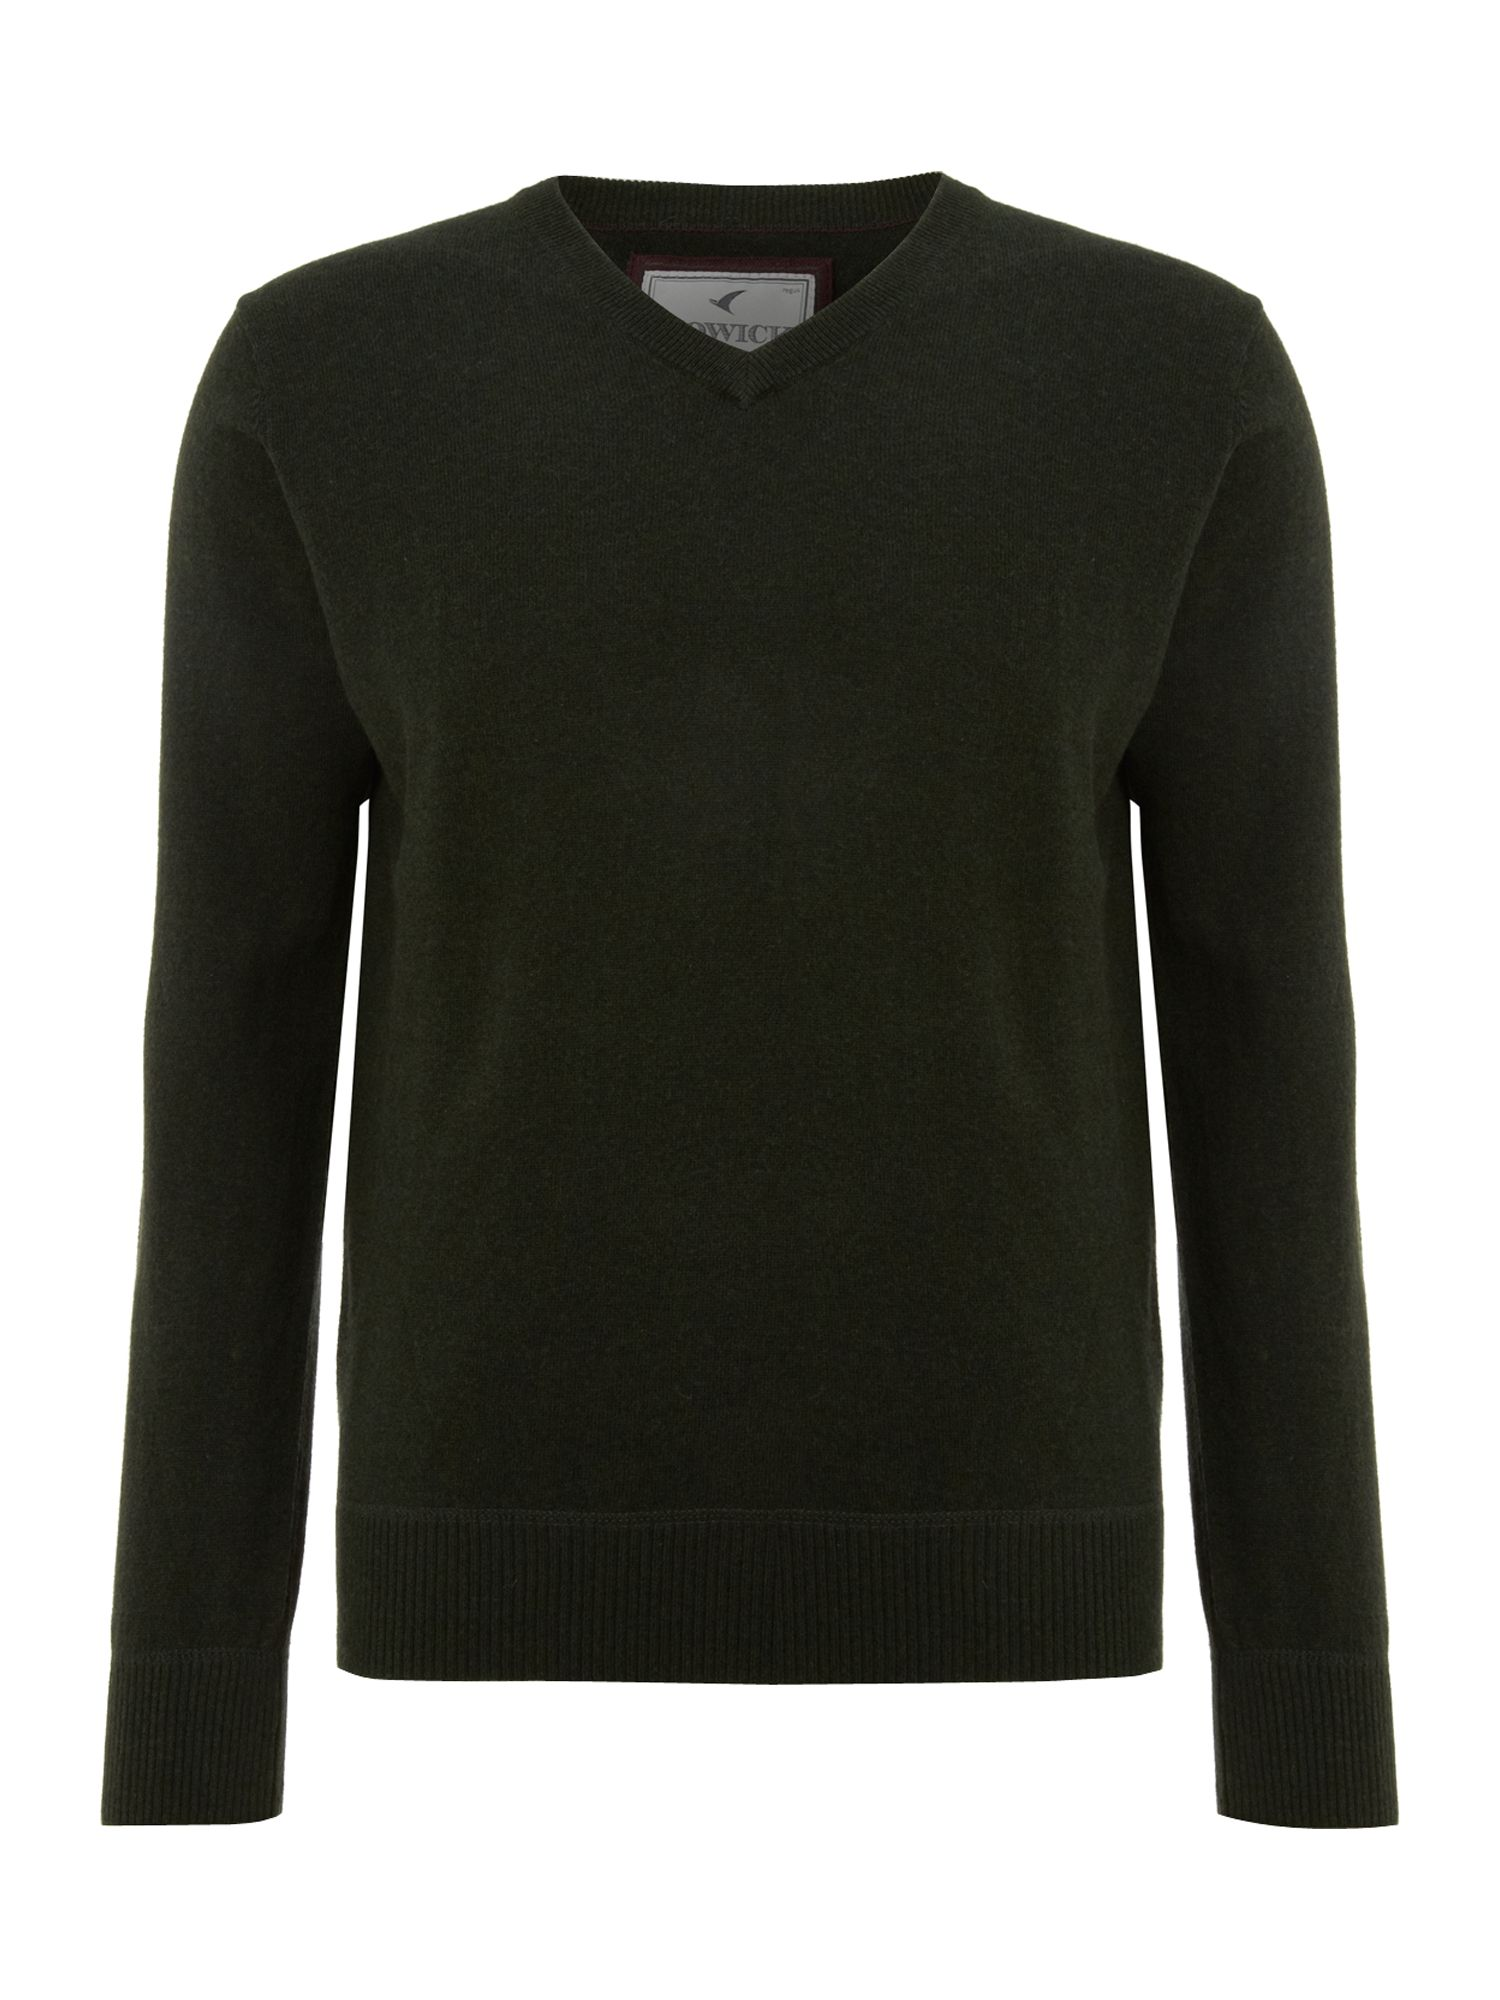 Cotton cashmere V-neck jumper made in Italy